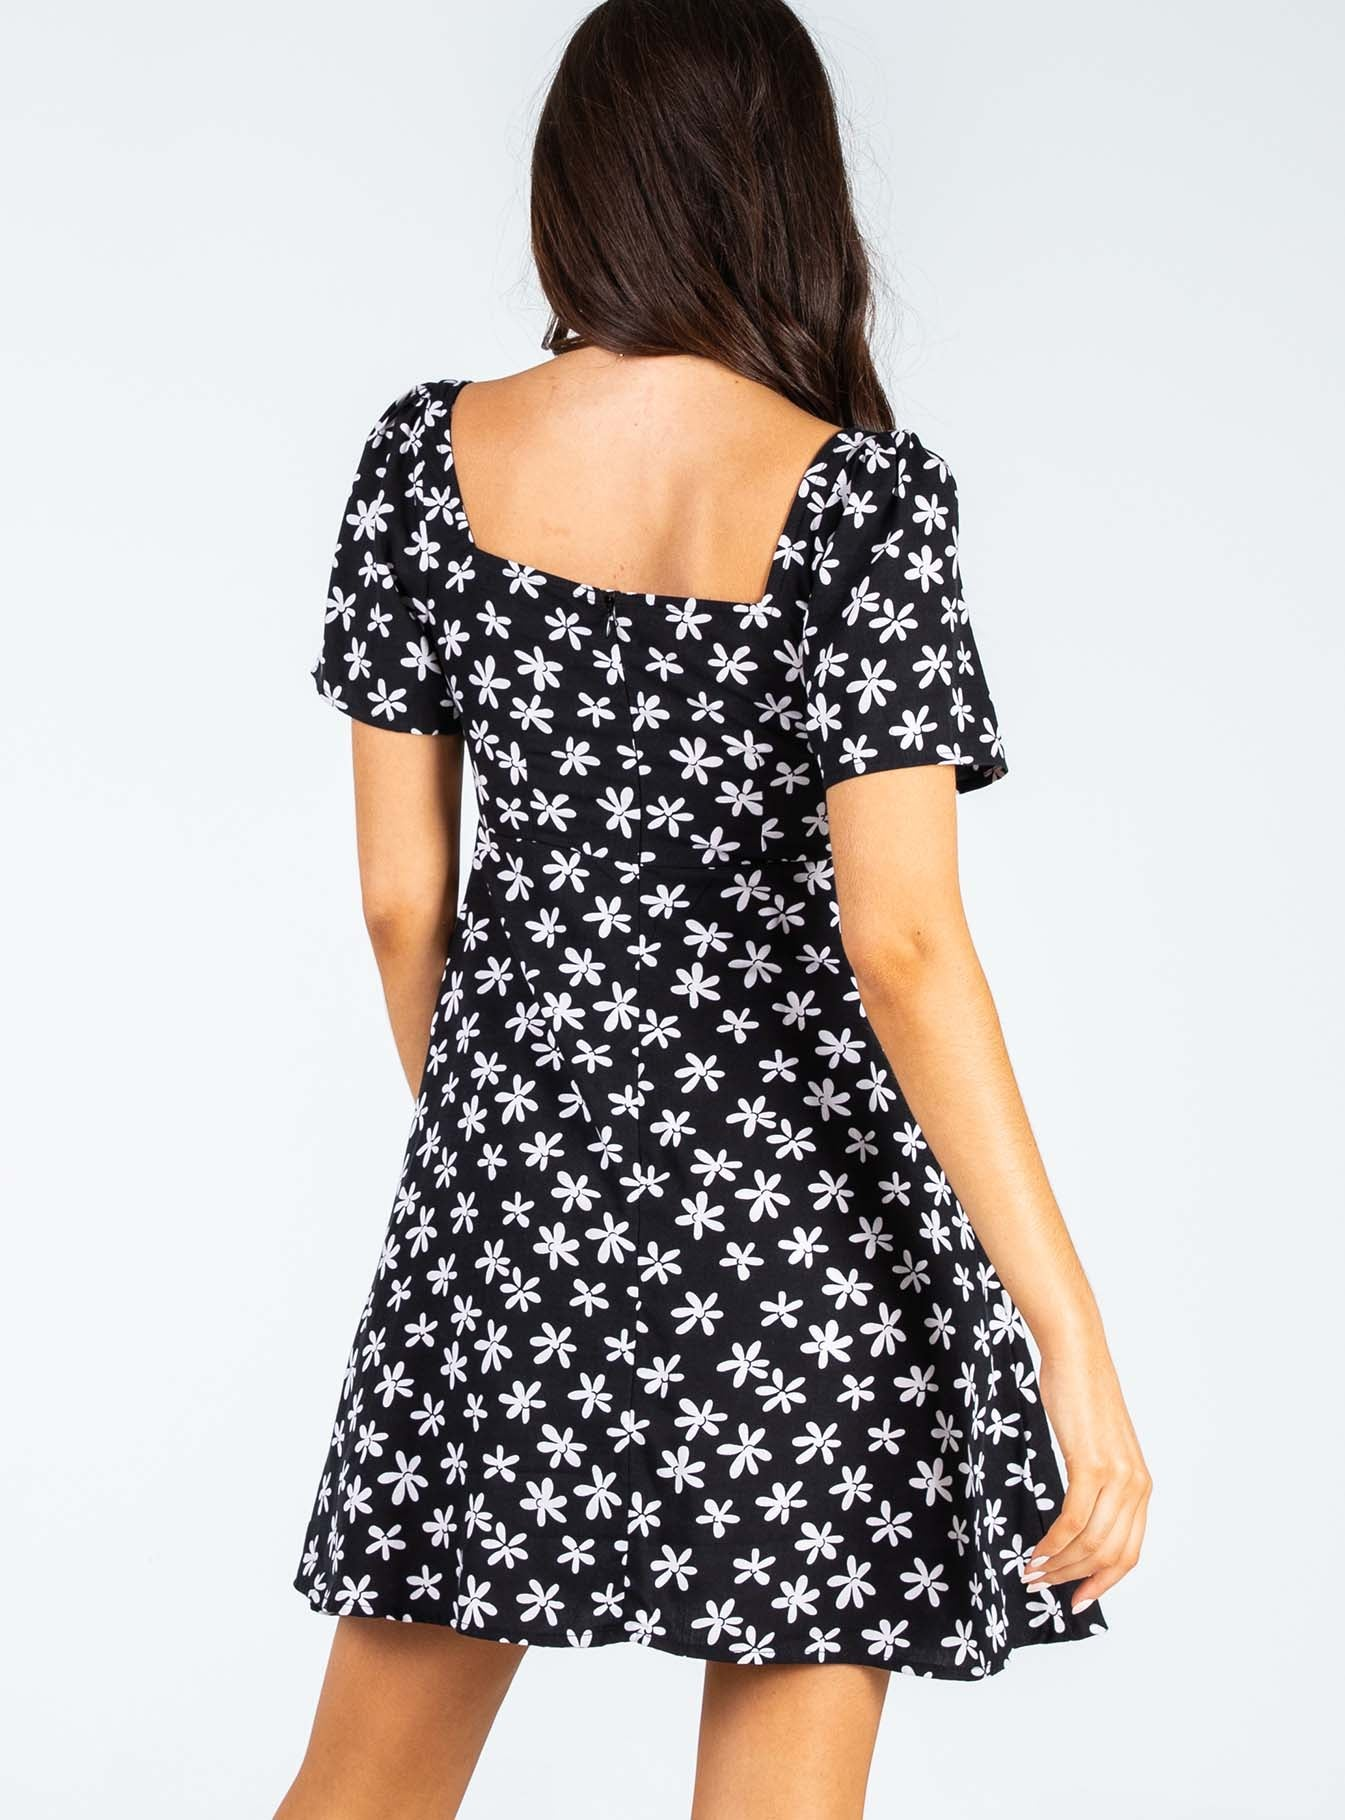 Motel Thalia Mini Dress 90's Daisy Black